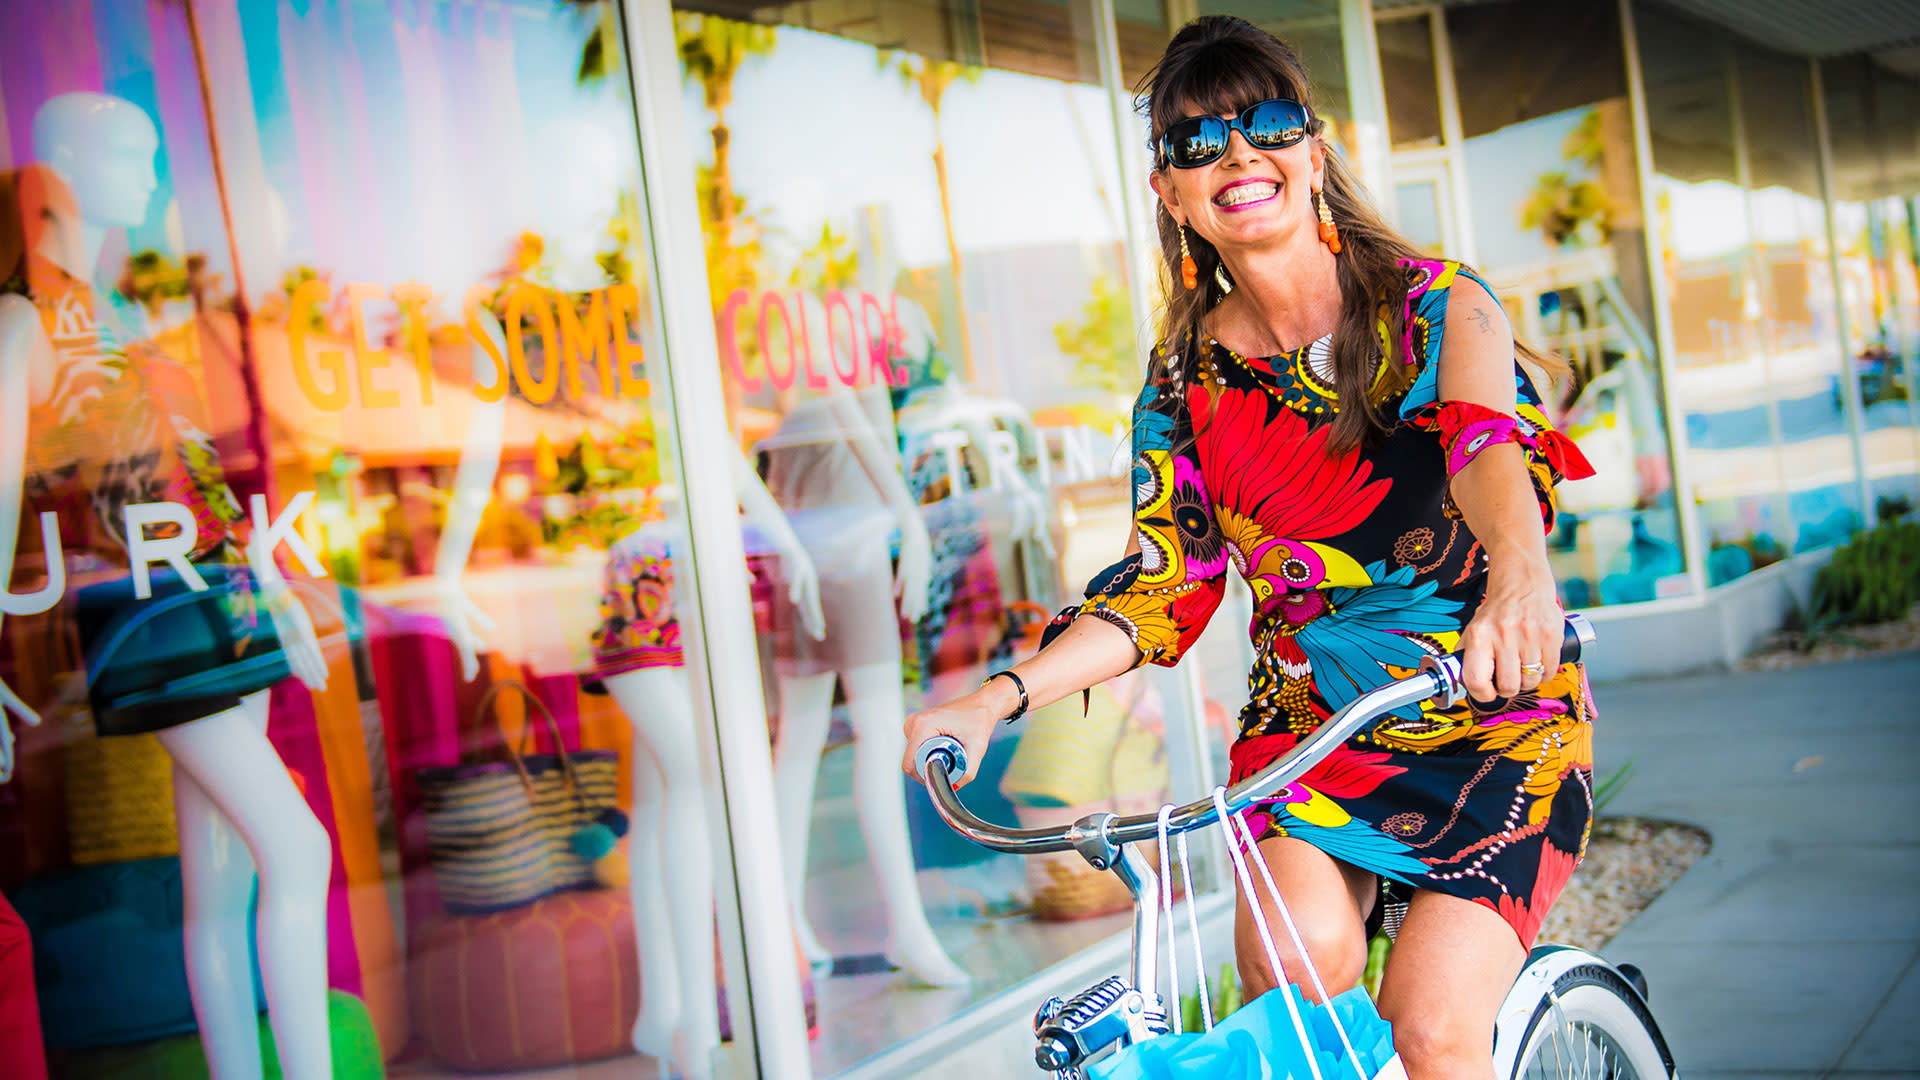 a bike ride by trina turk's boutique in downtown palm springs